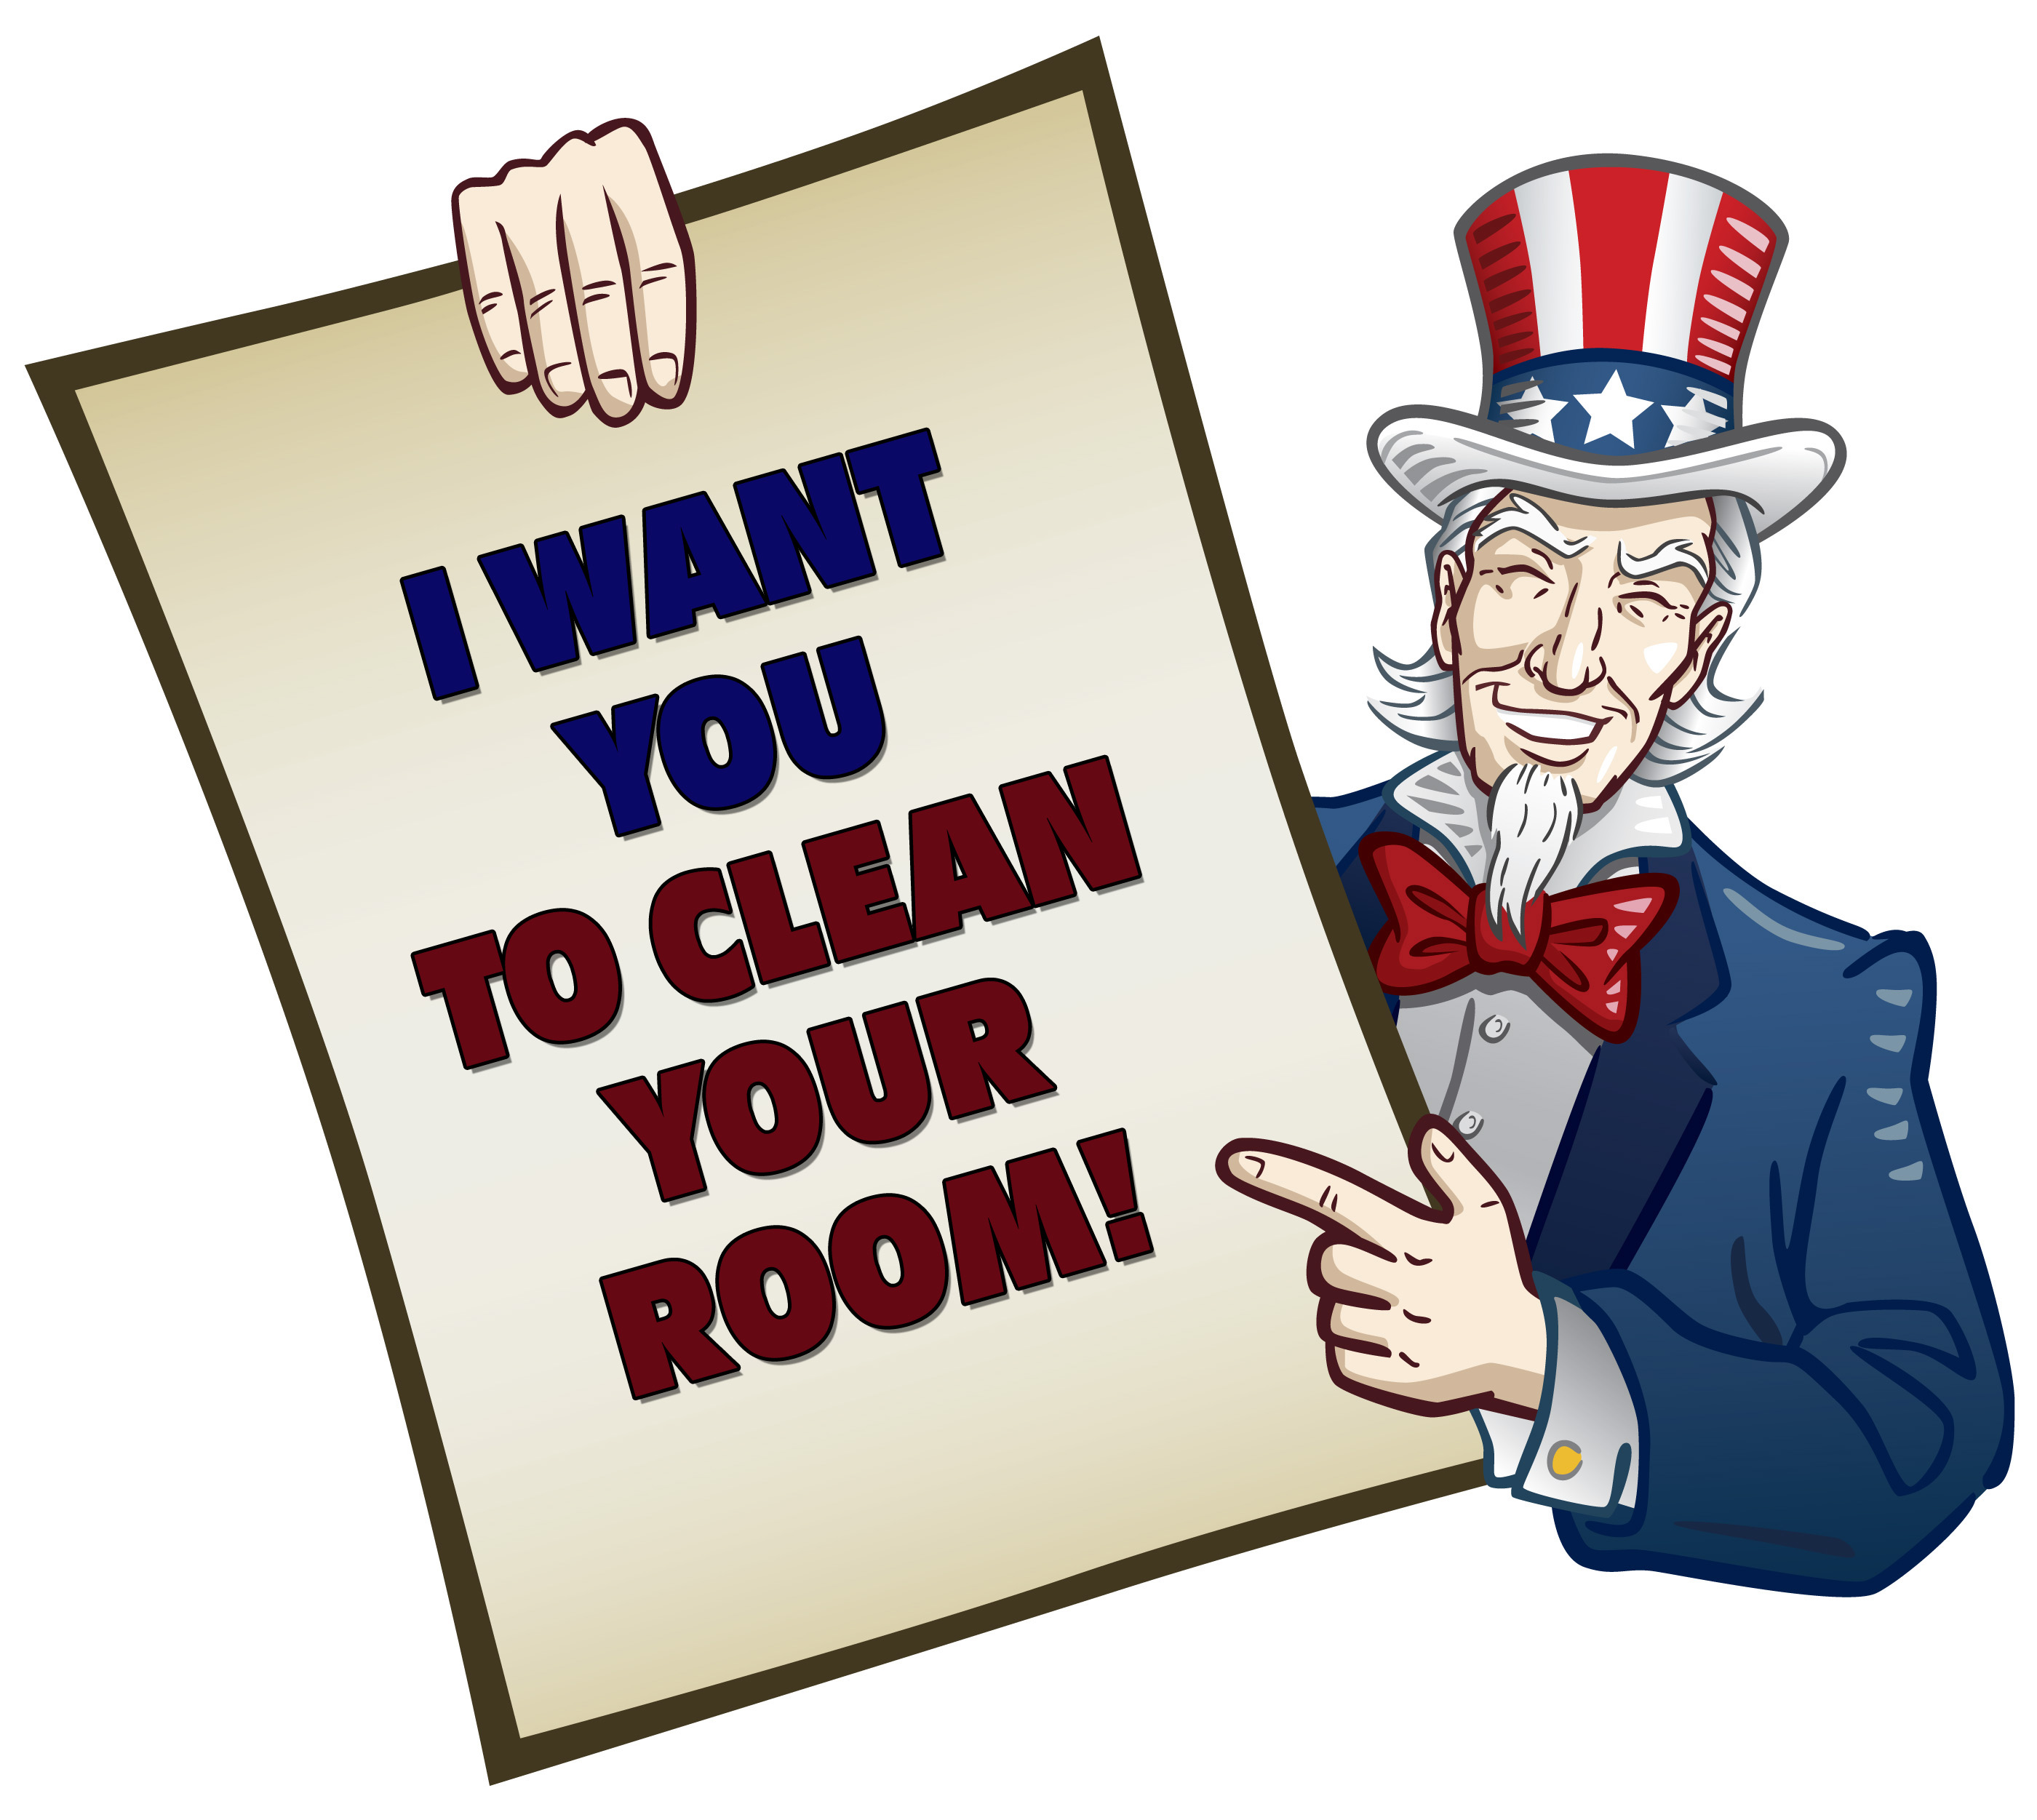 Uncle Sam We Want You Best free image.